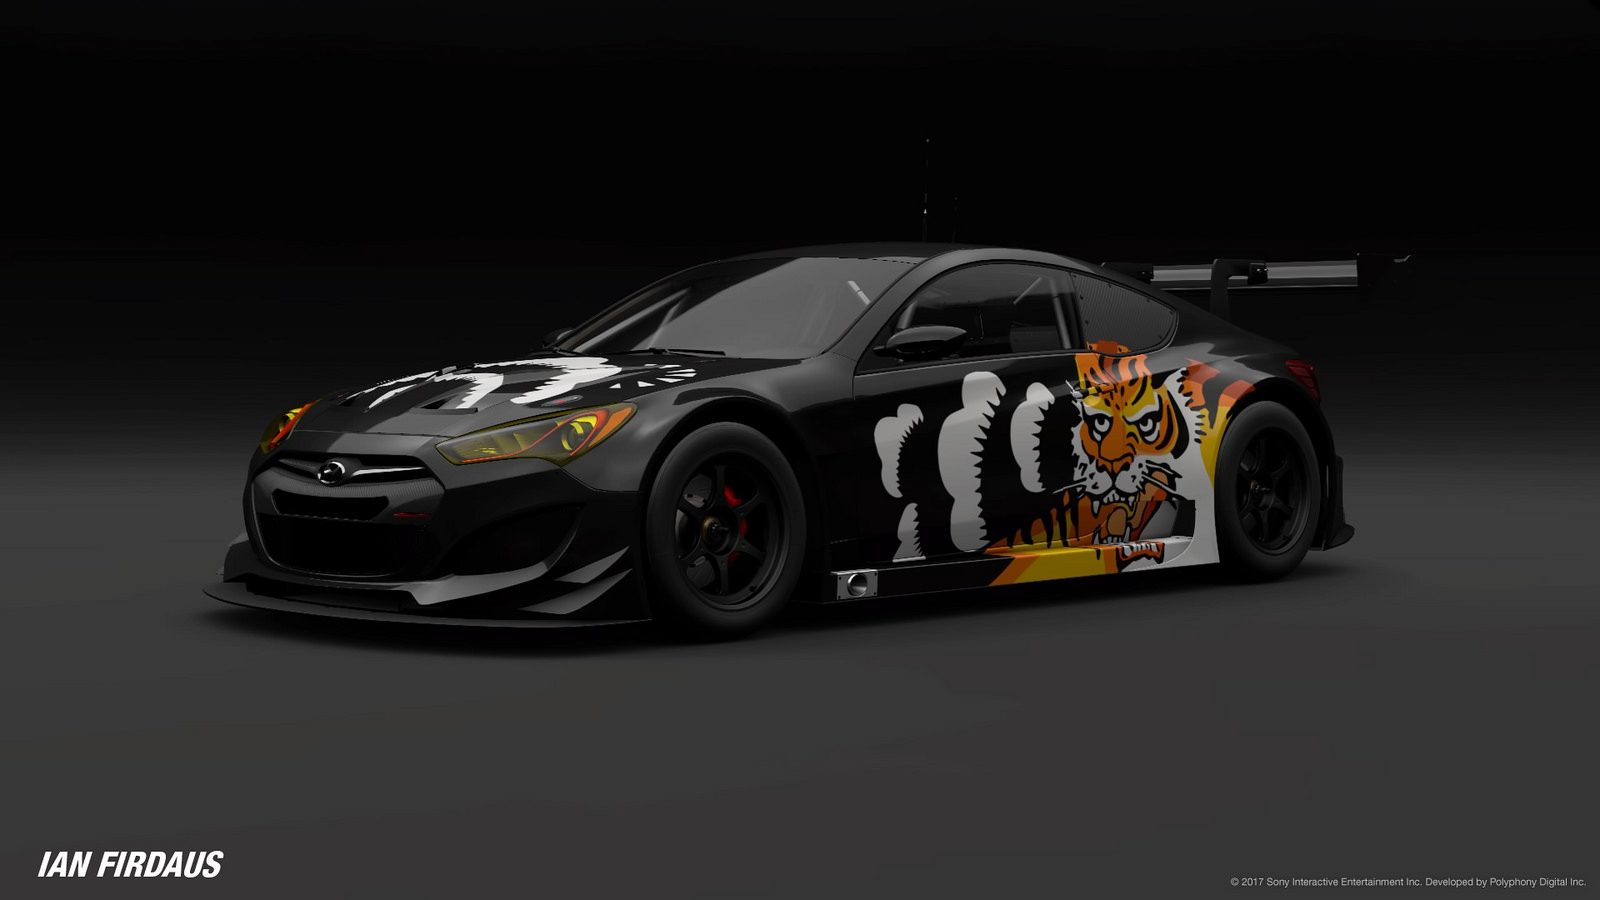 Ian's Need For Speed liveries